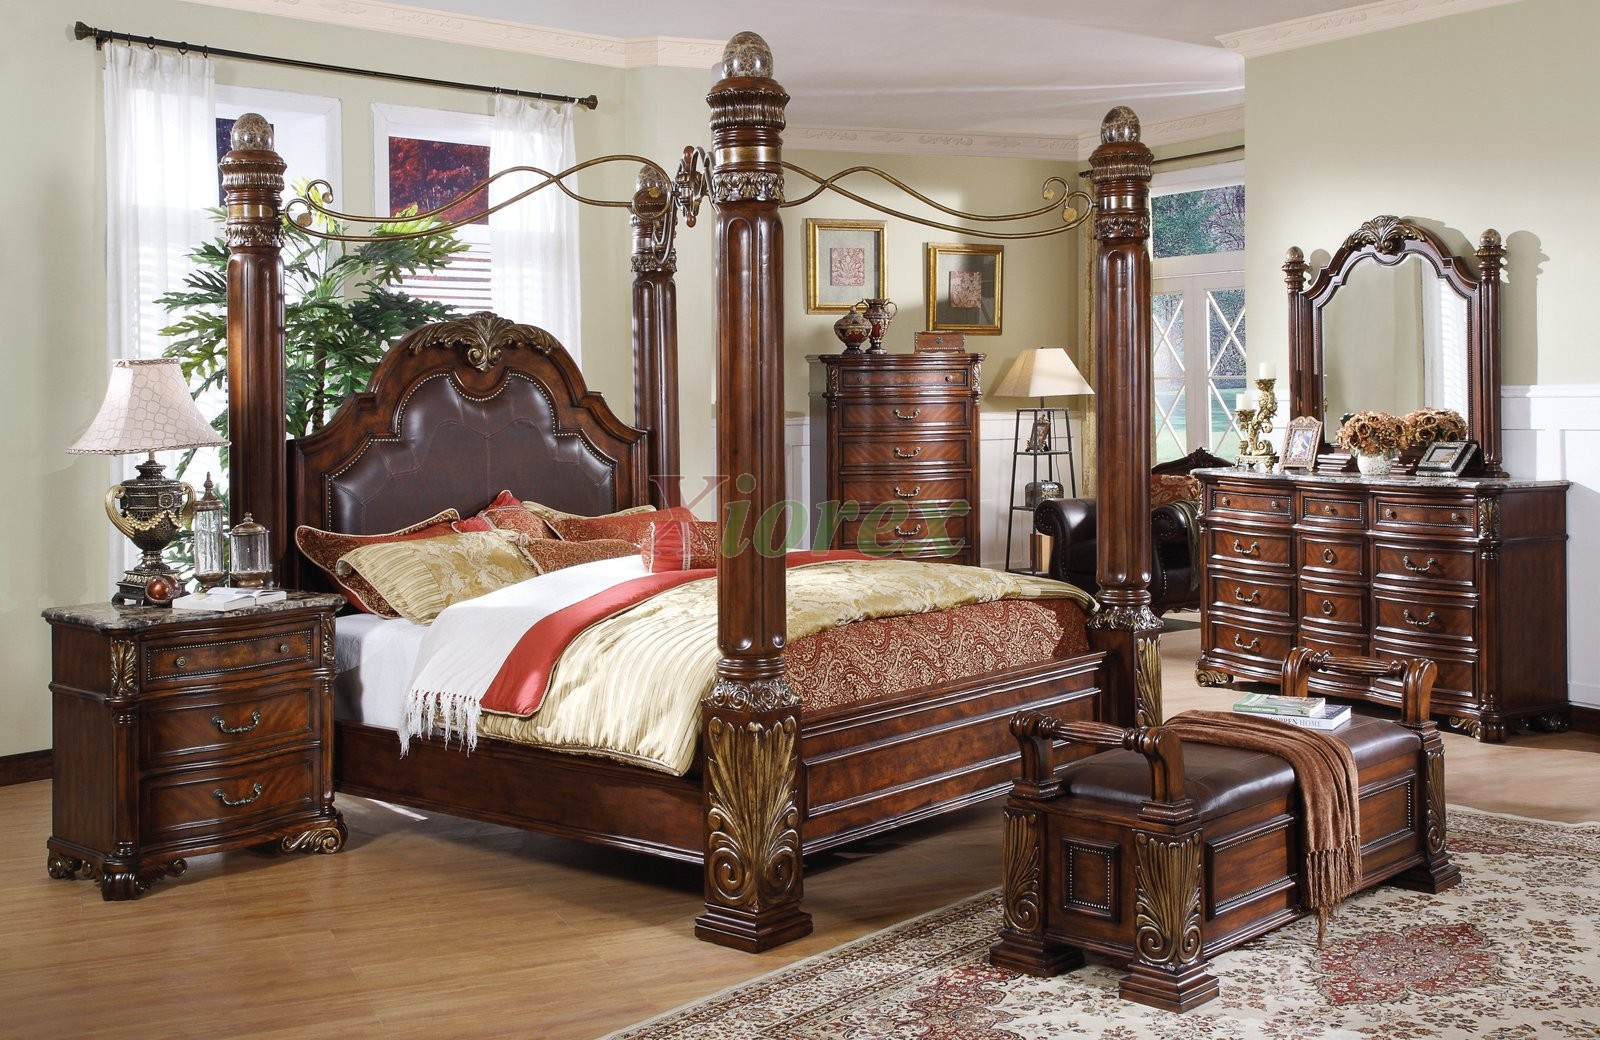 king agisee of fill bed with dorgon canopy size bedroom photos throughout primary sets gorgeous